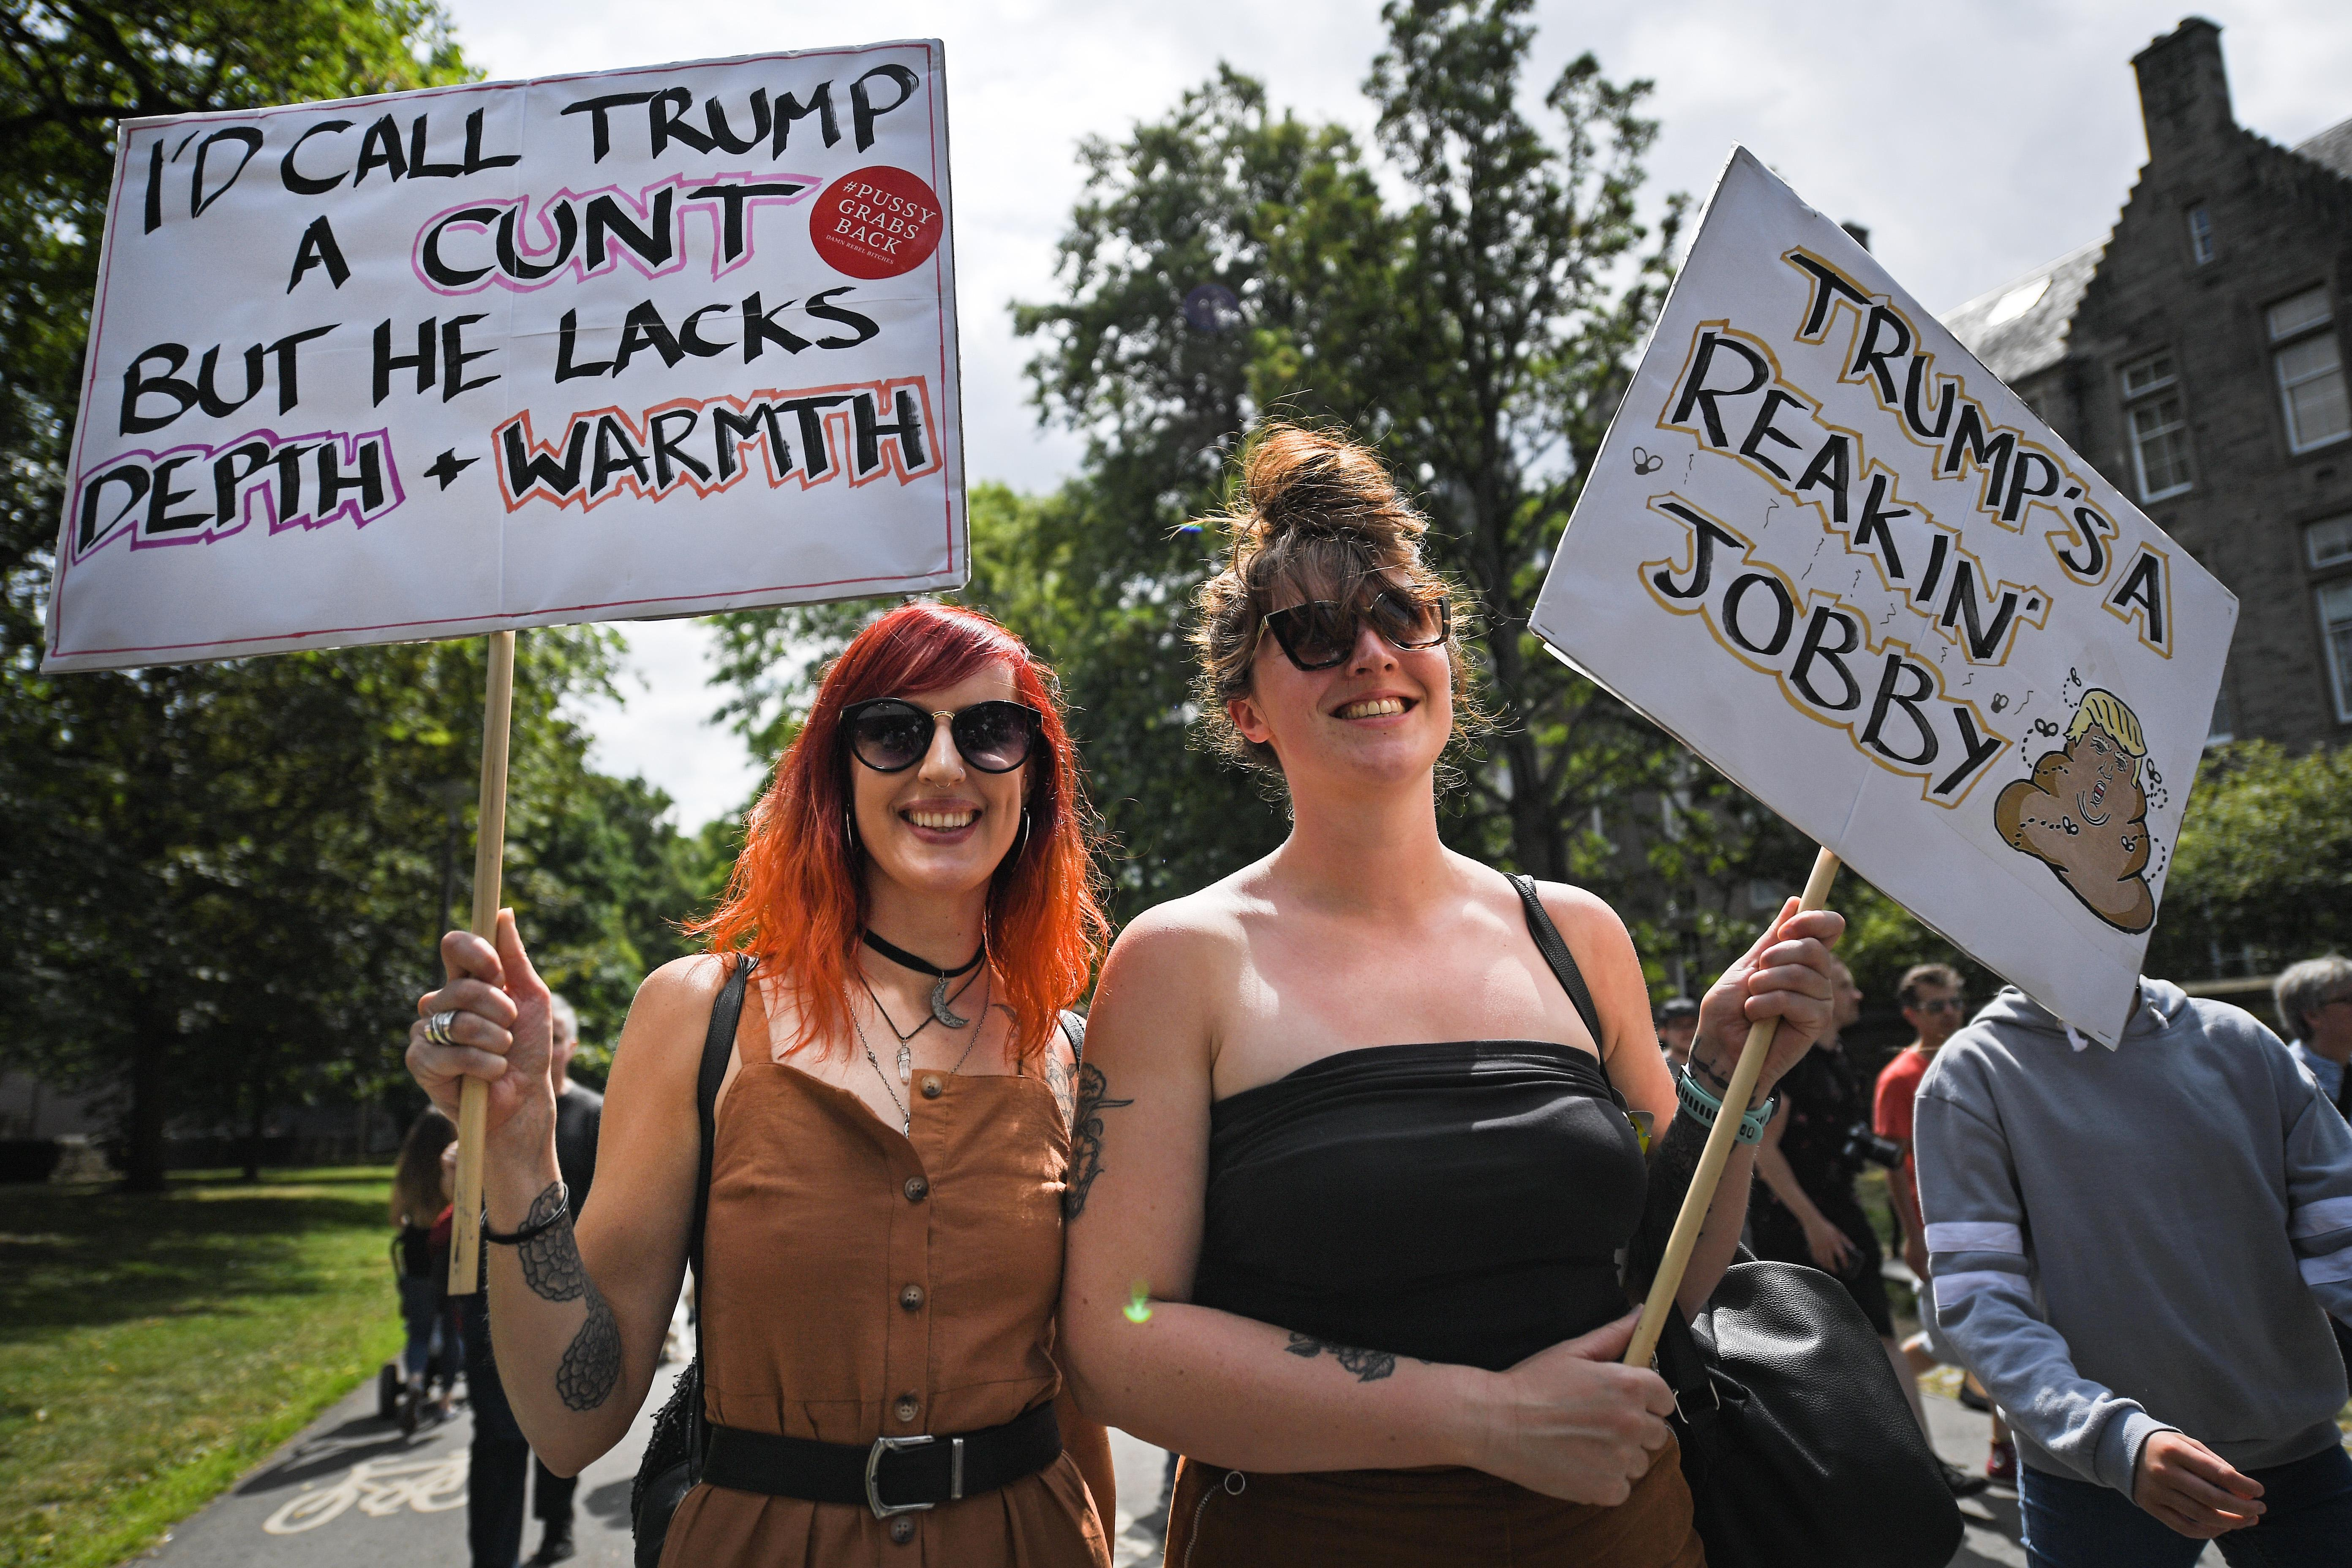 People march holding anti-Trump signs on July 14, 2018 in Edinburgh, Scotland.